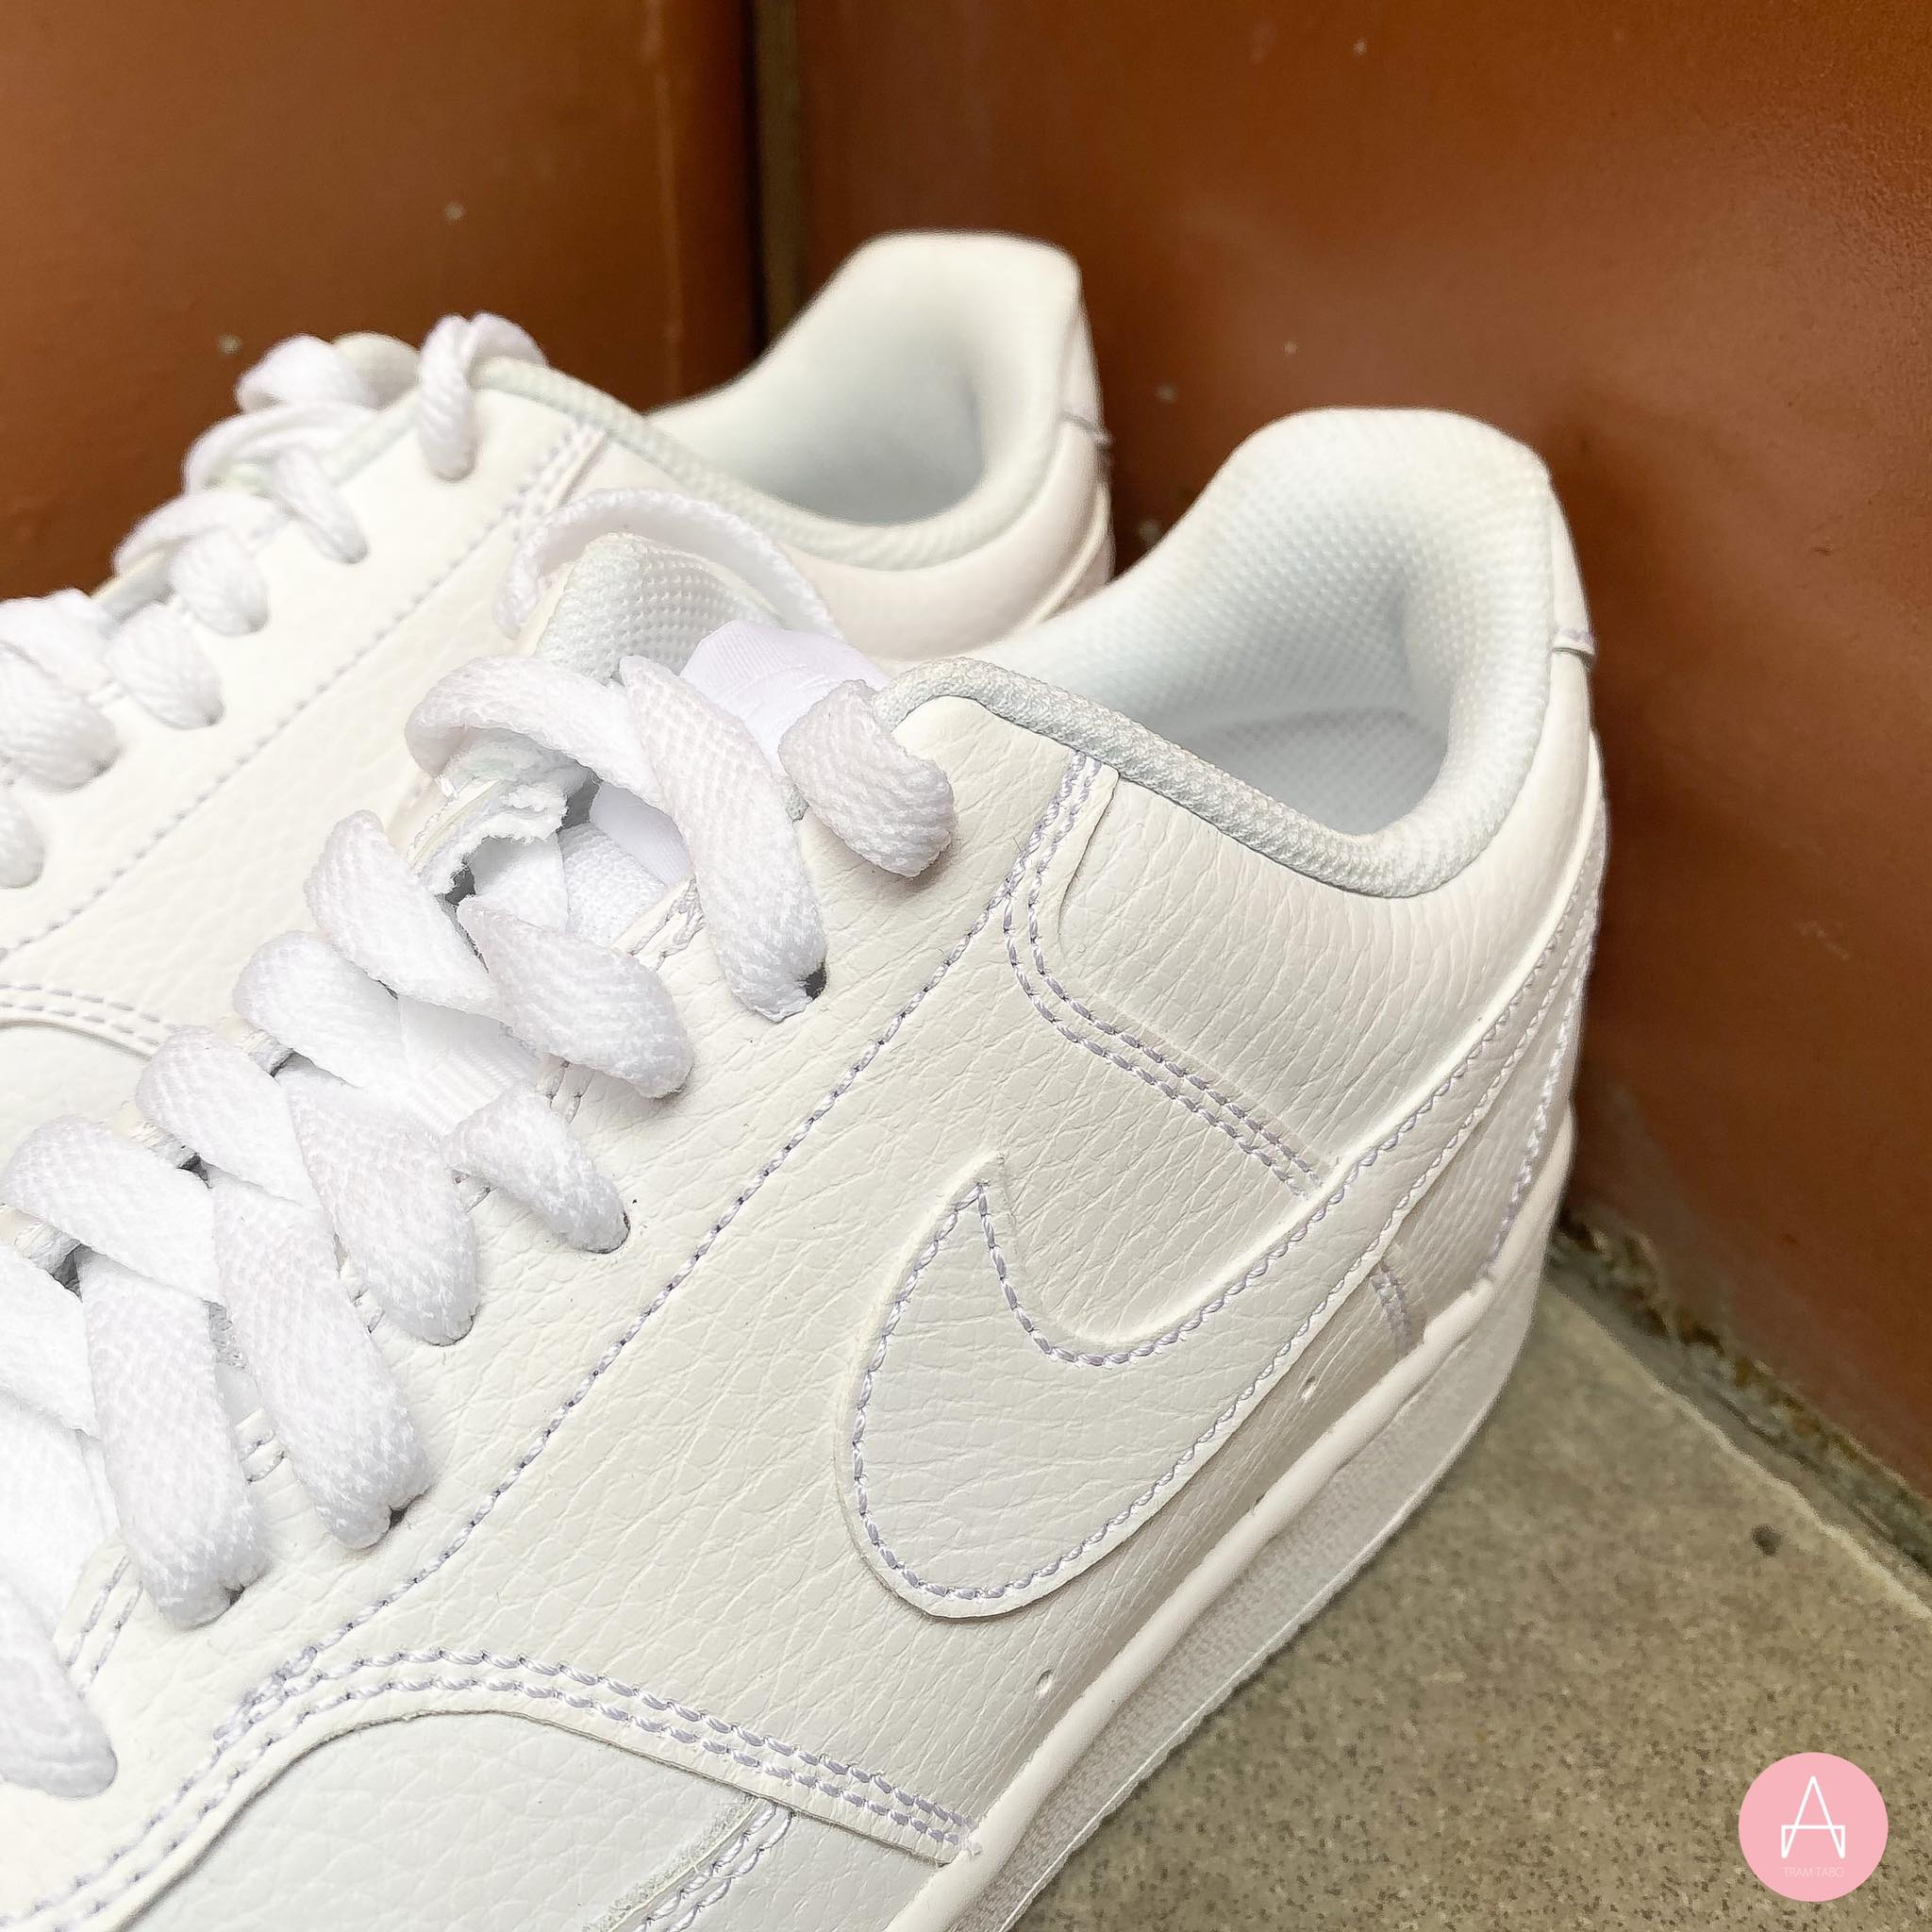 [CD5434-100] W NIKE COURT VISION LOW ALL WHITE